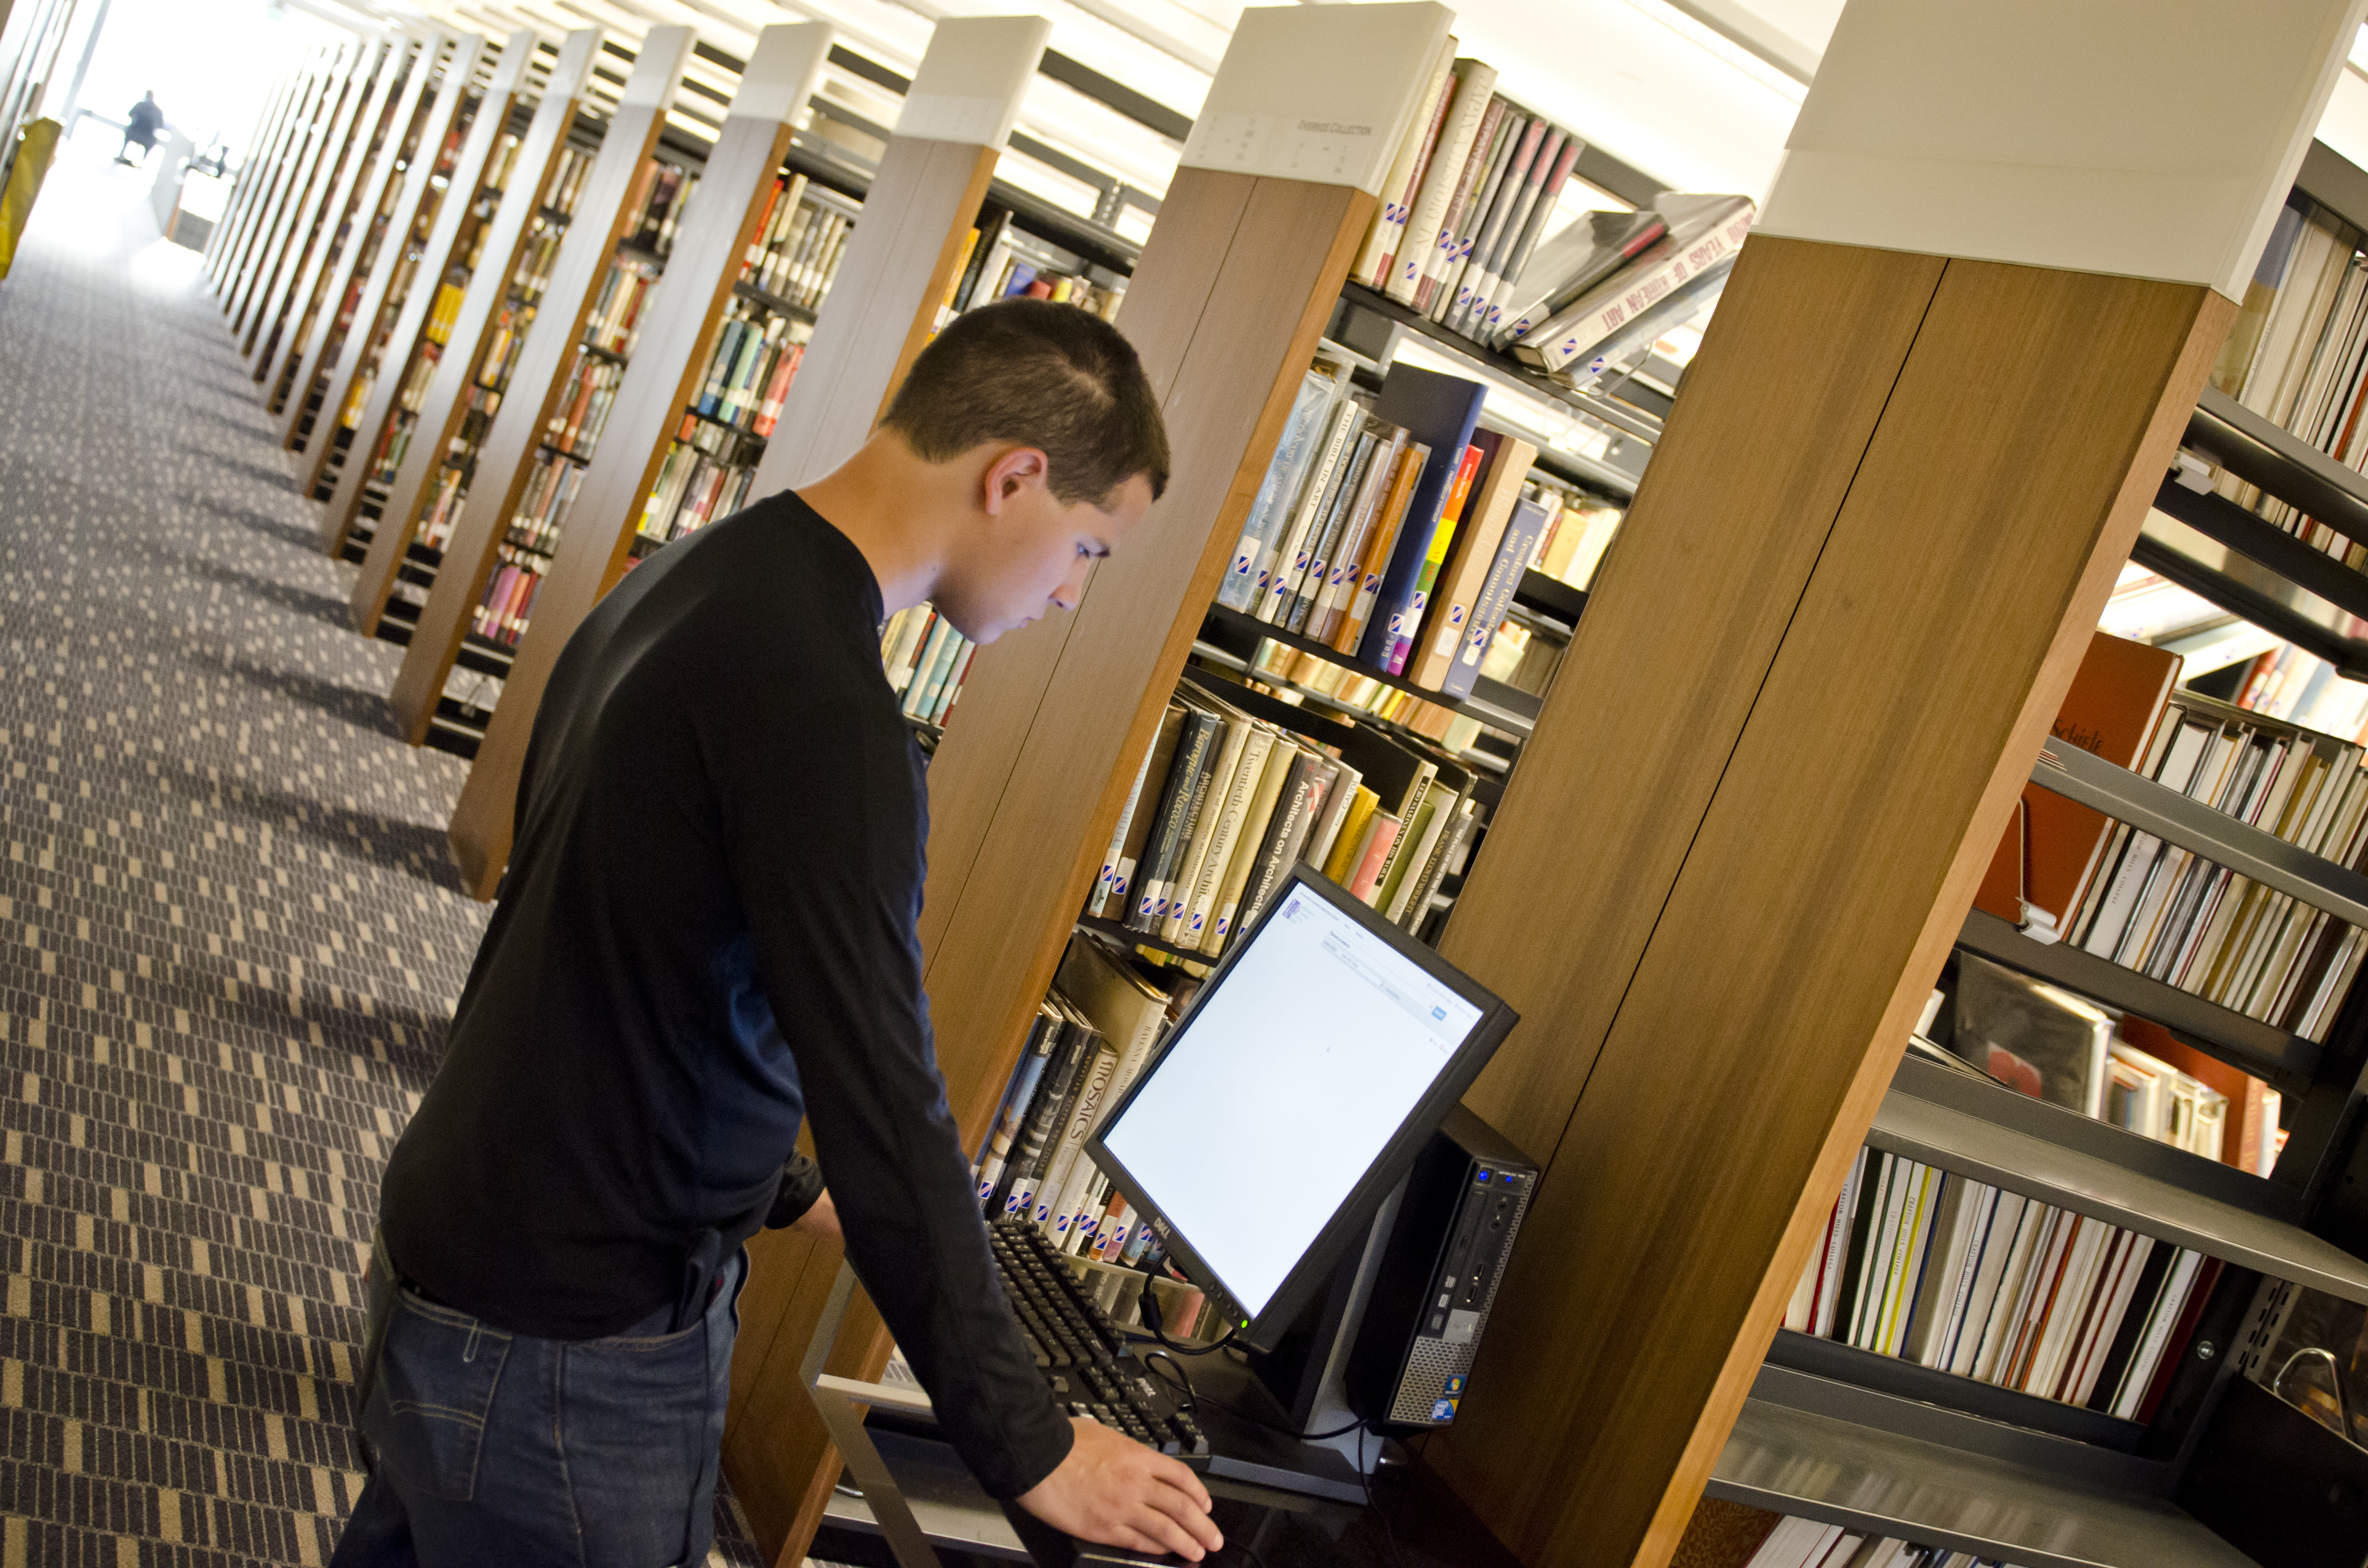 A student using a computer in the library.